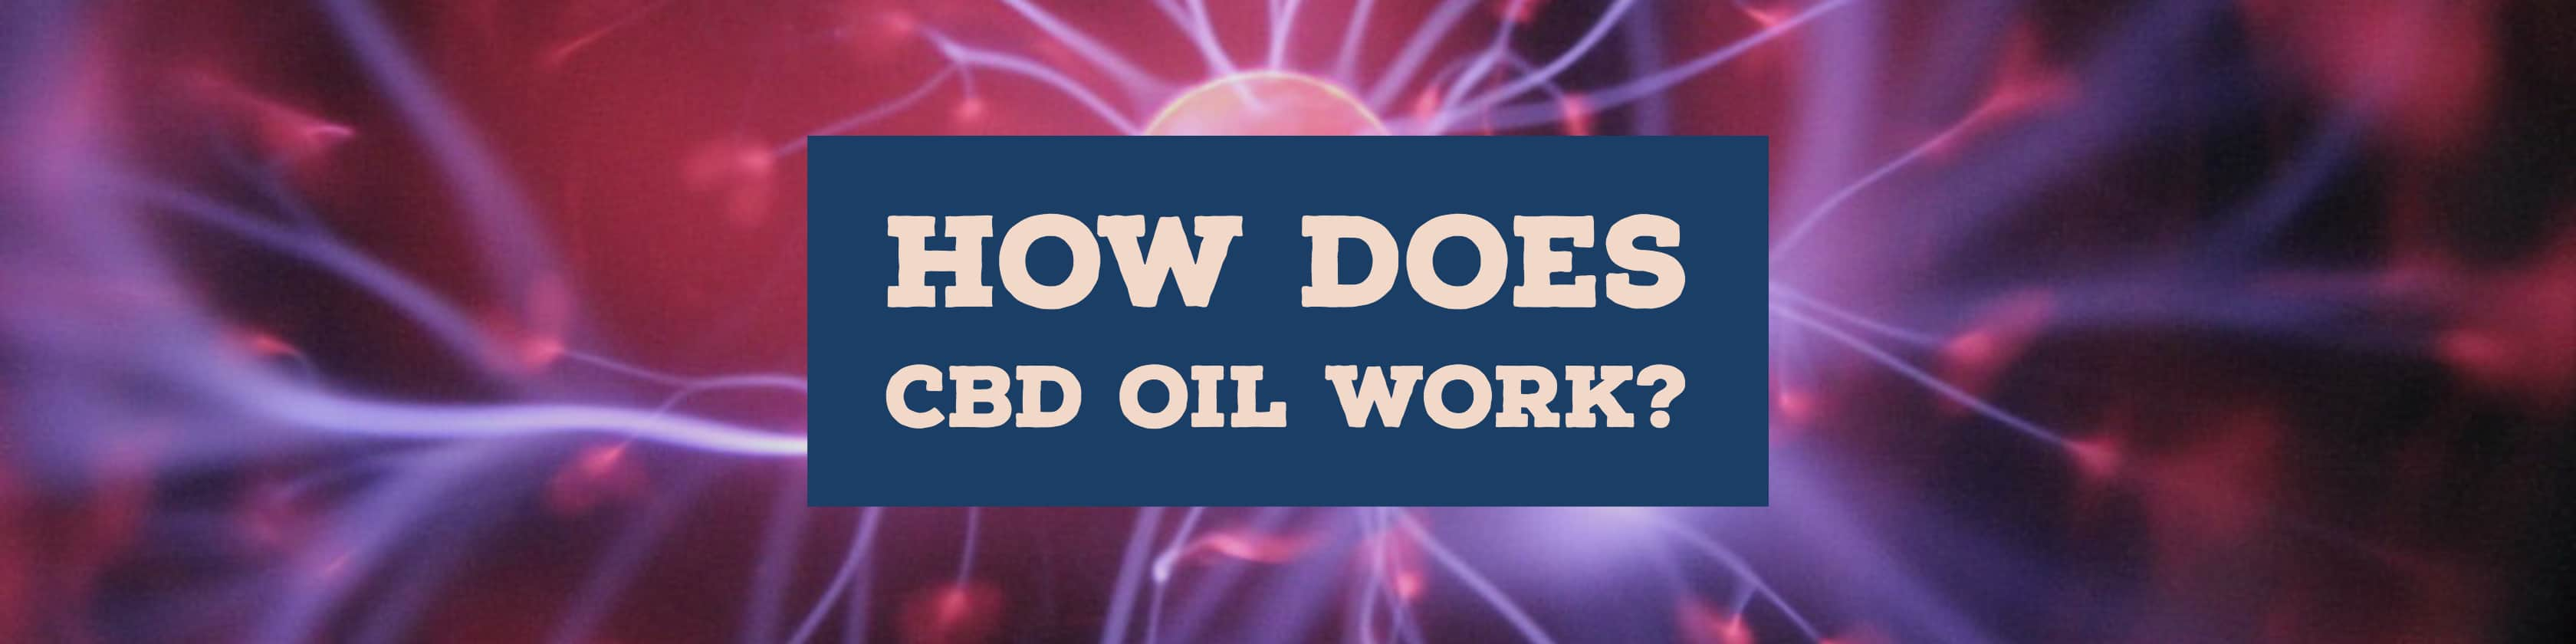 How-Does-CBD-Oil-Work-Thumbnail